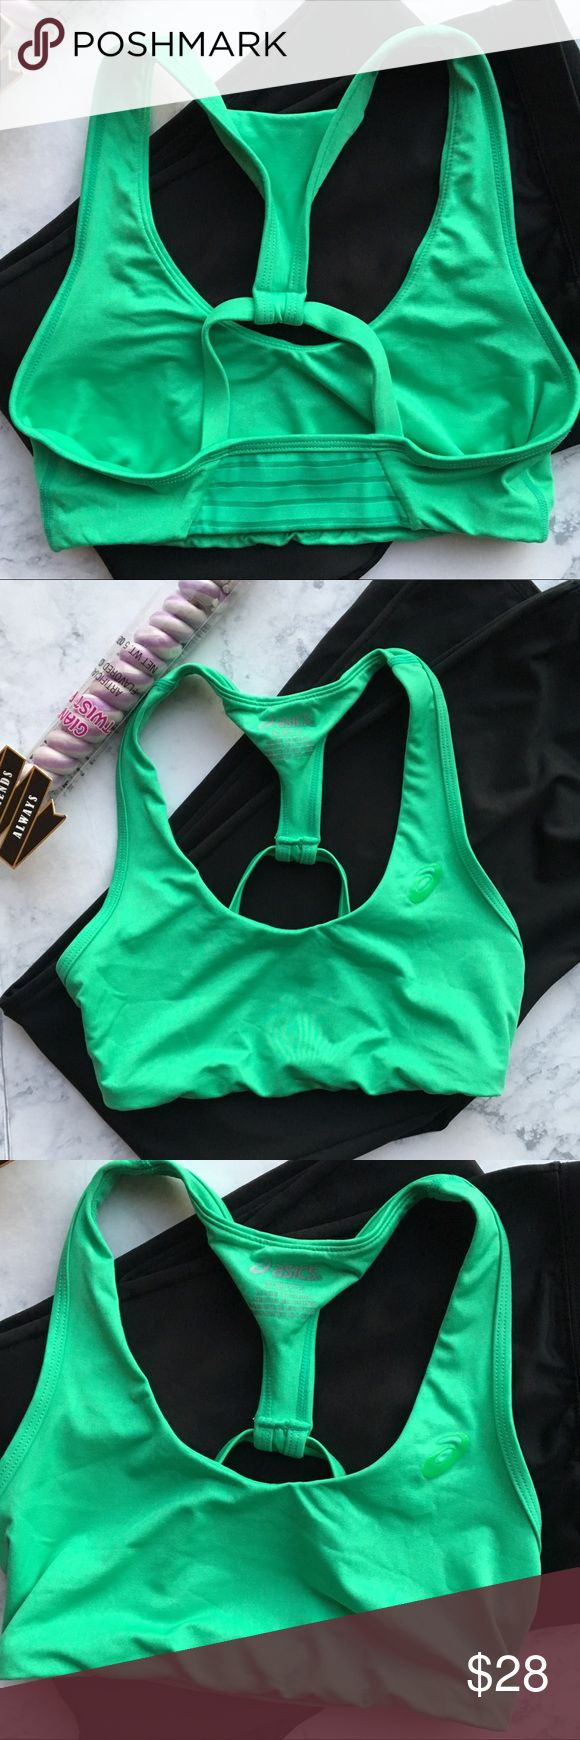 Blowout Sale Asics Strappy Green Sports Bra 🍀 In very good conditions . Yoga style bra . So cute pictures don't do justice . Great color to have in tour wardrobe can be used all year round . Asics Intimates & Sleepwear Bras